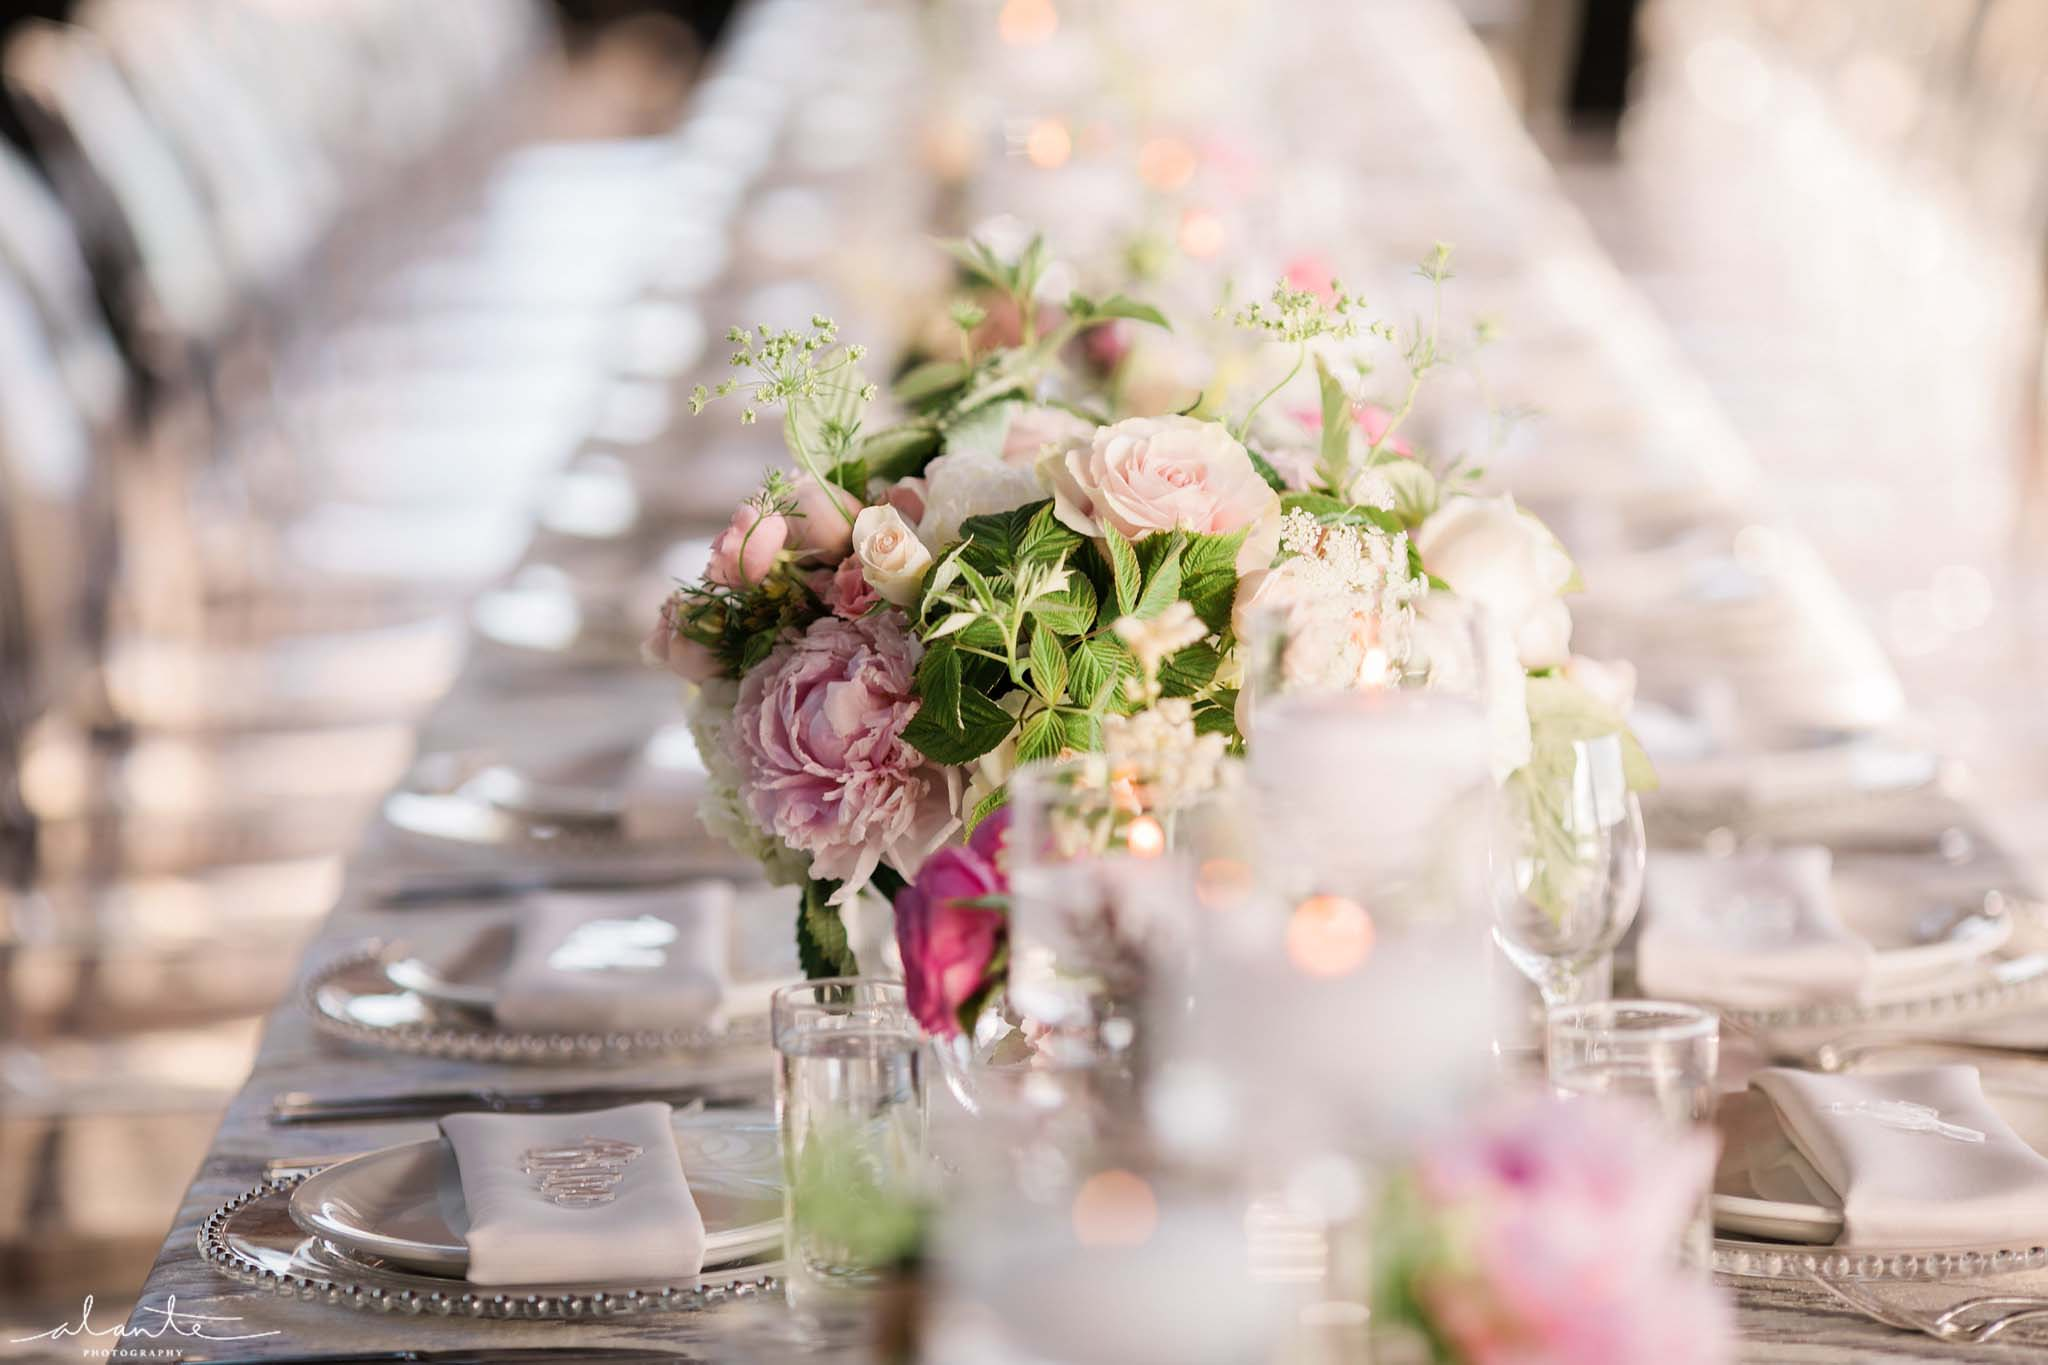 Long table filled with flowers and candles - Olympic Rooftop Pavilion wedding with pink peonies by Flora Nova Design Seattle